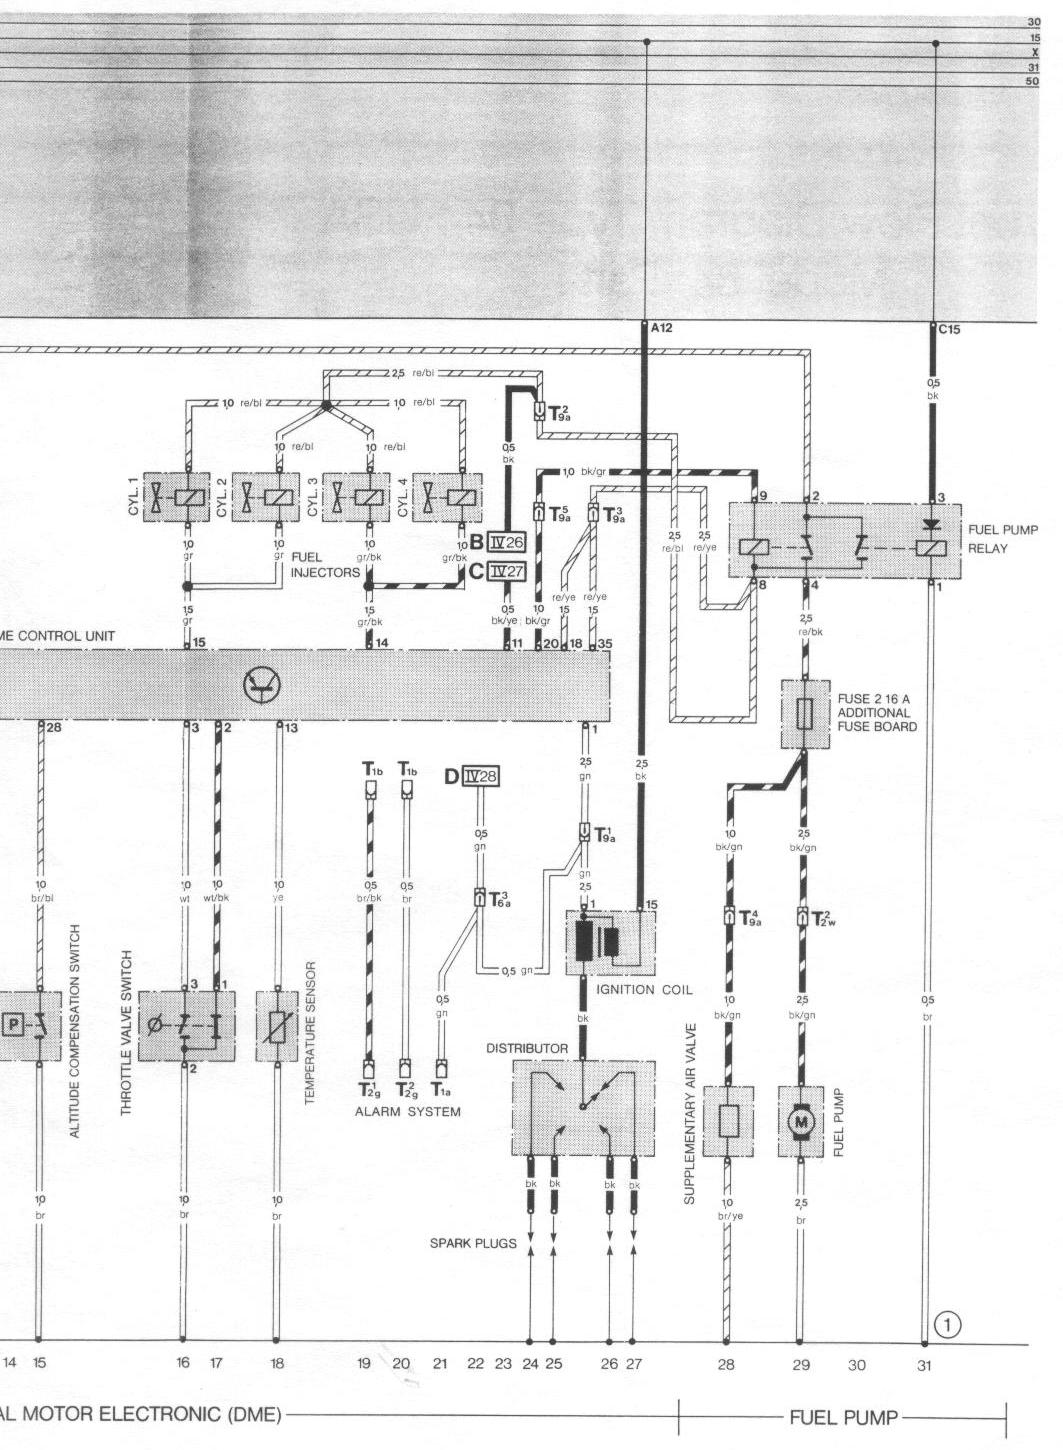 944_84_1_2 pelican parts porsche 924 944 electrical diagrams 1984 porsche 911 wiring diagram at gsmx.co